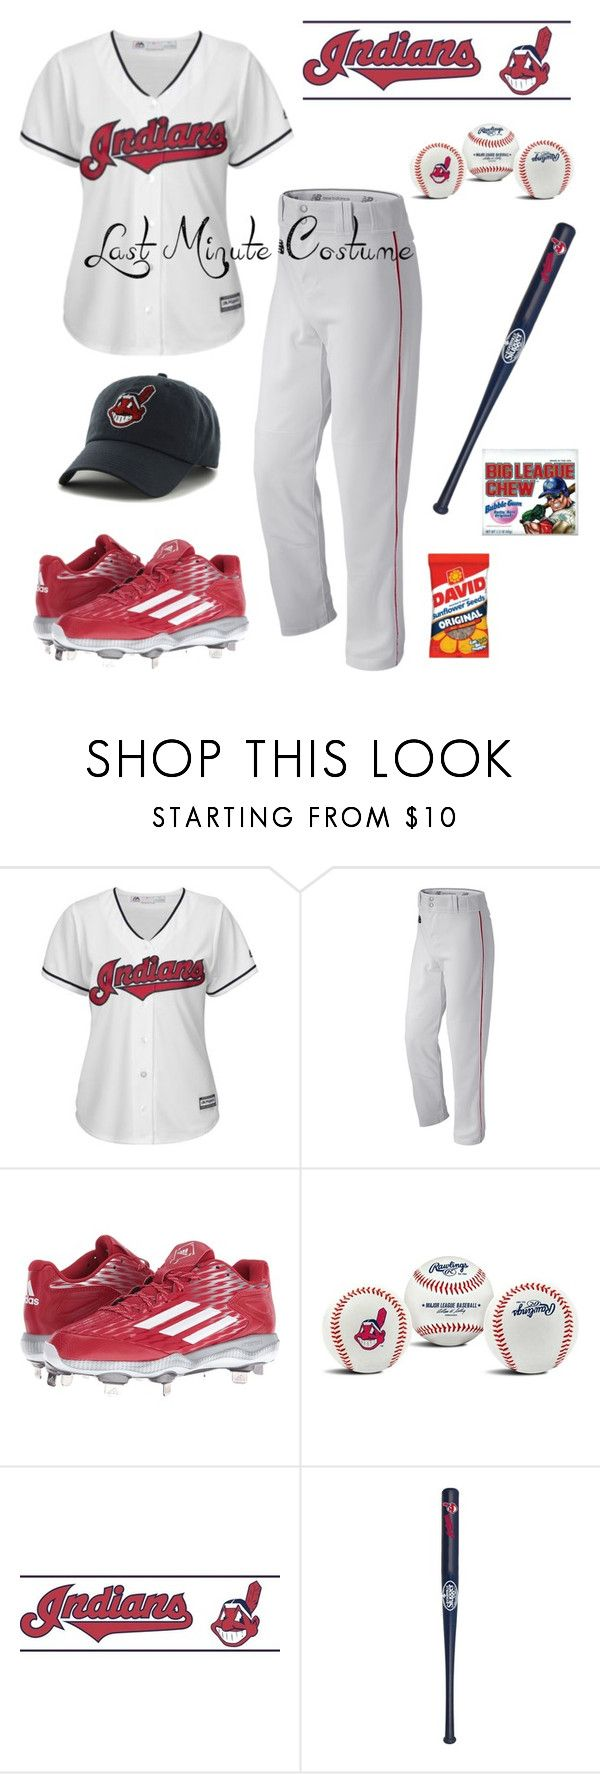 """""""World series baseball player: last minute costume"""" by im-karla-with-a-k ❤ liked on Polyvore featuring Majestic, New Balance, adidas, Rawlings, York Wallcoverings and Louisville Slugger"""